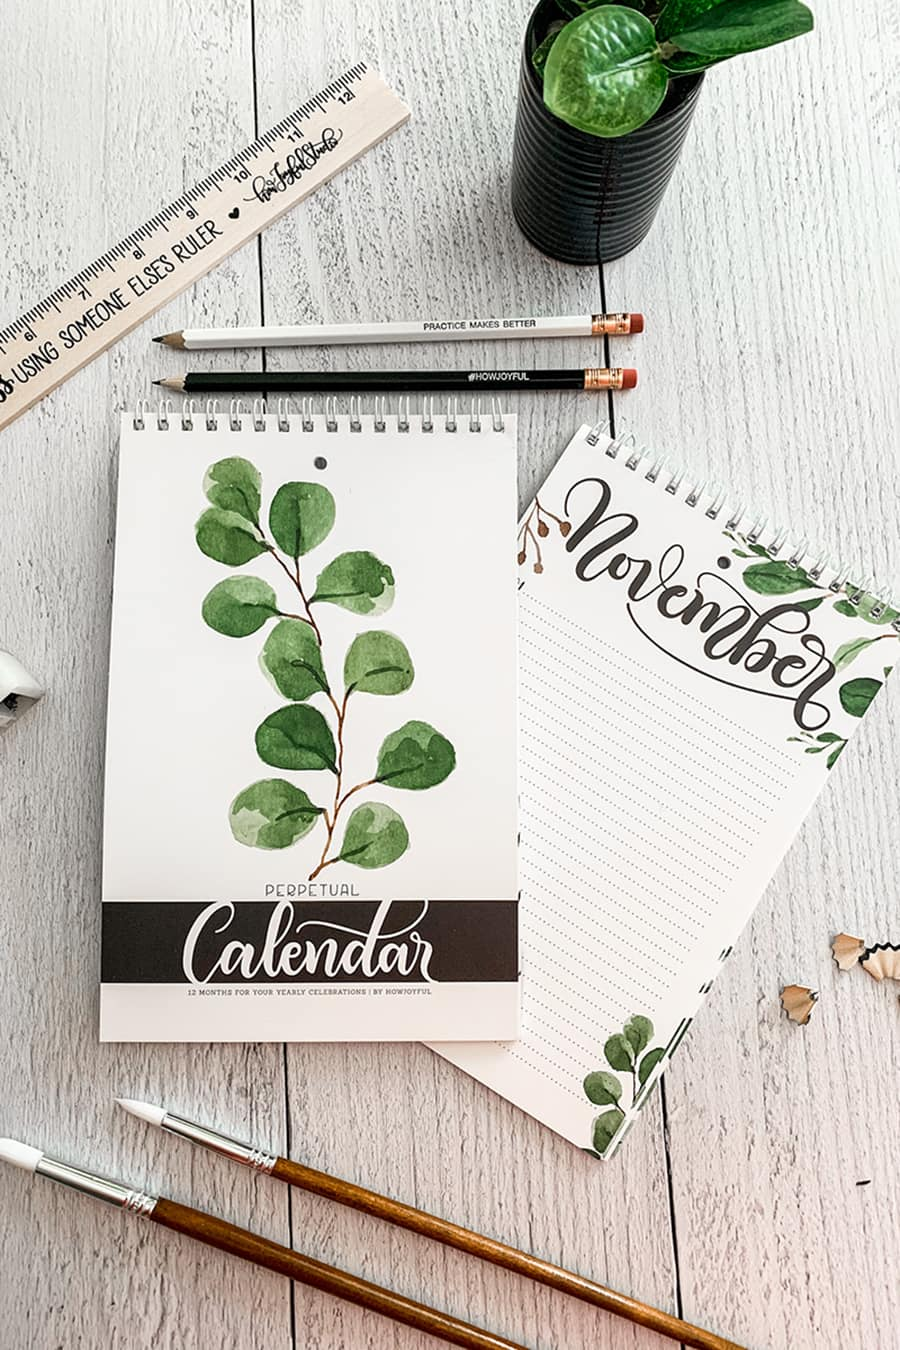 Farmhouse perpetual calendar - Hand lettered calendar with watercolor foliage